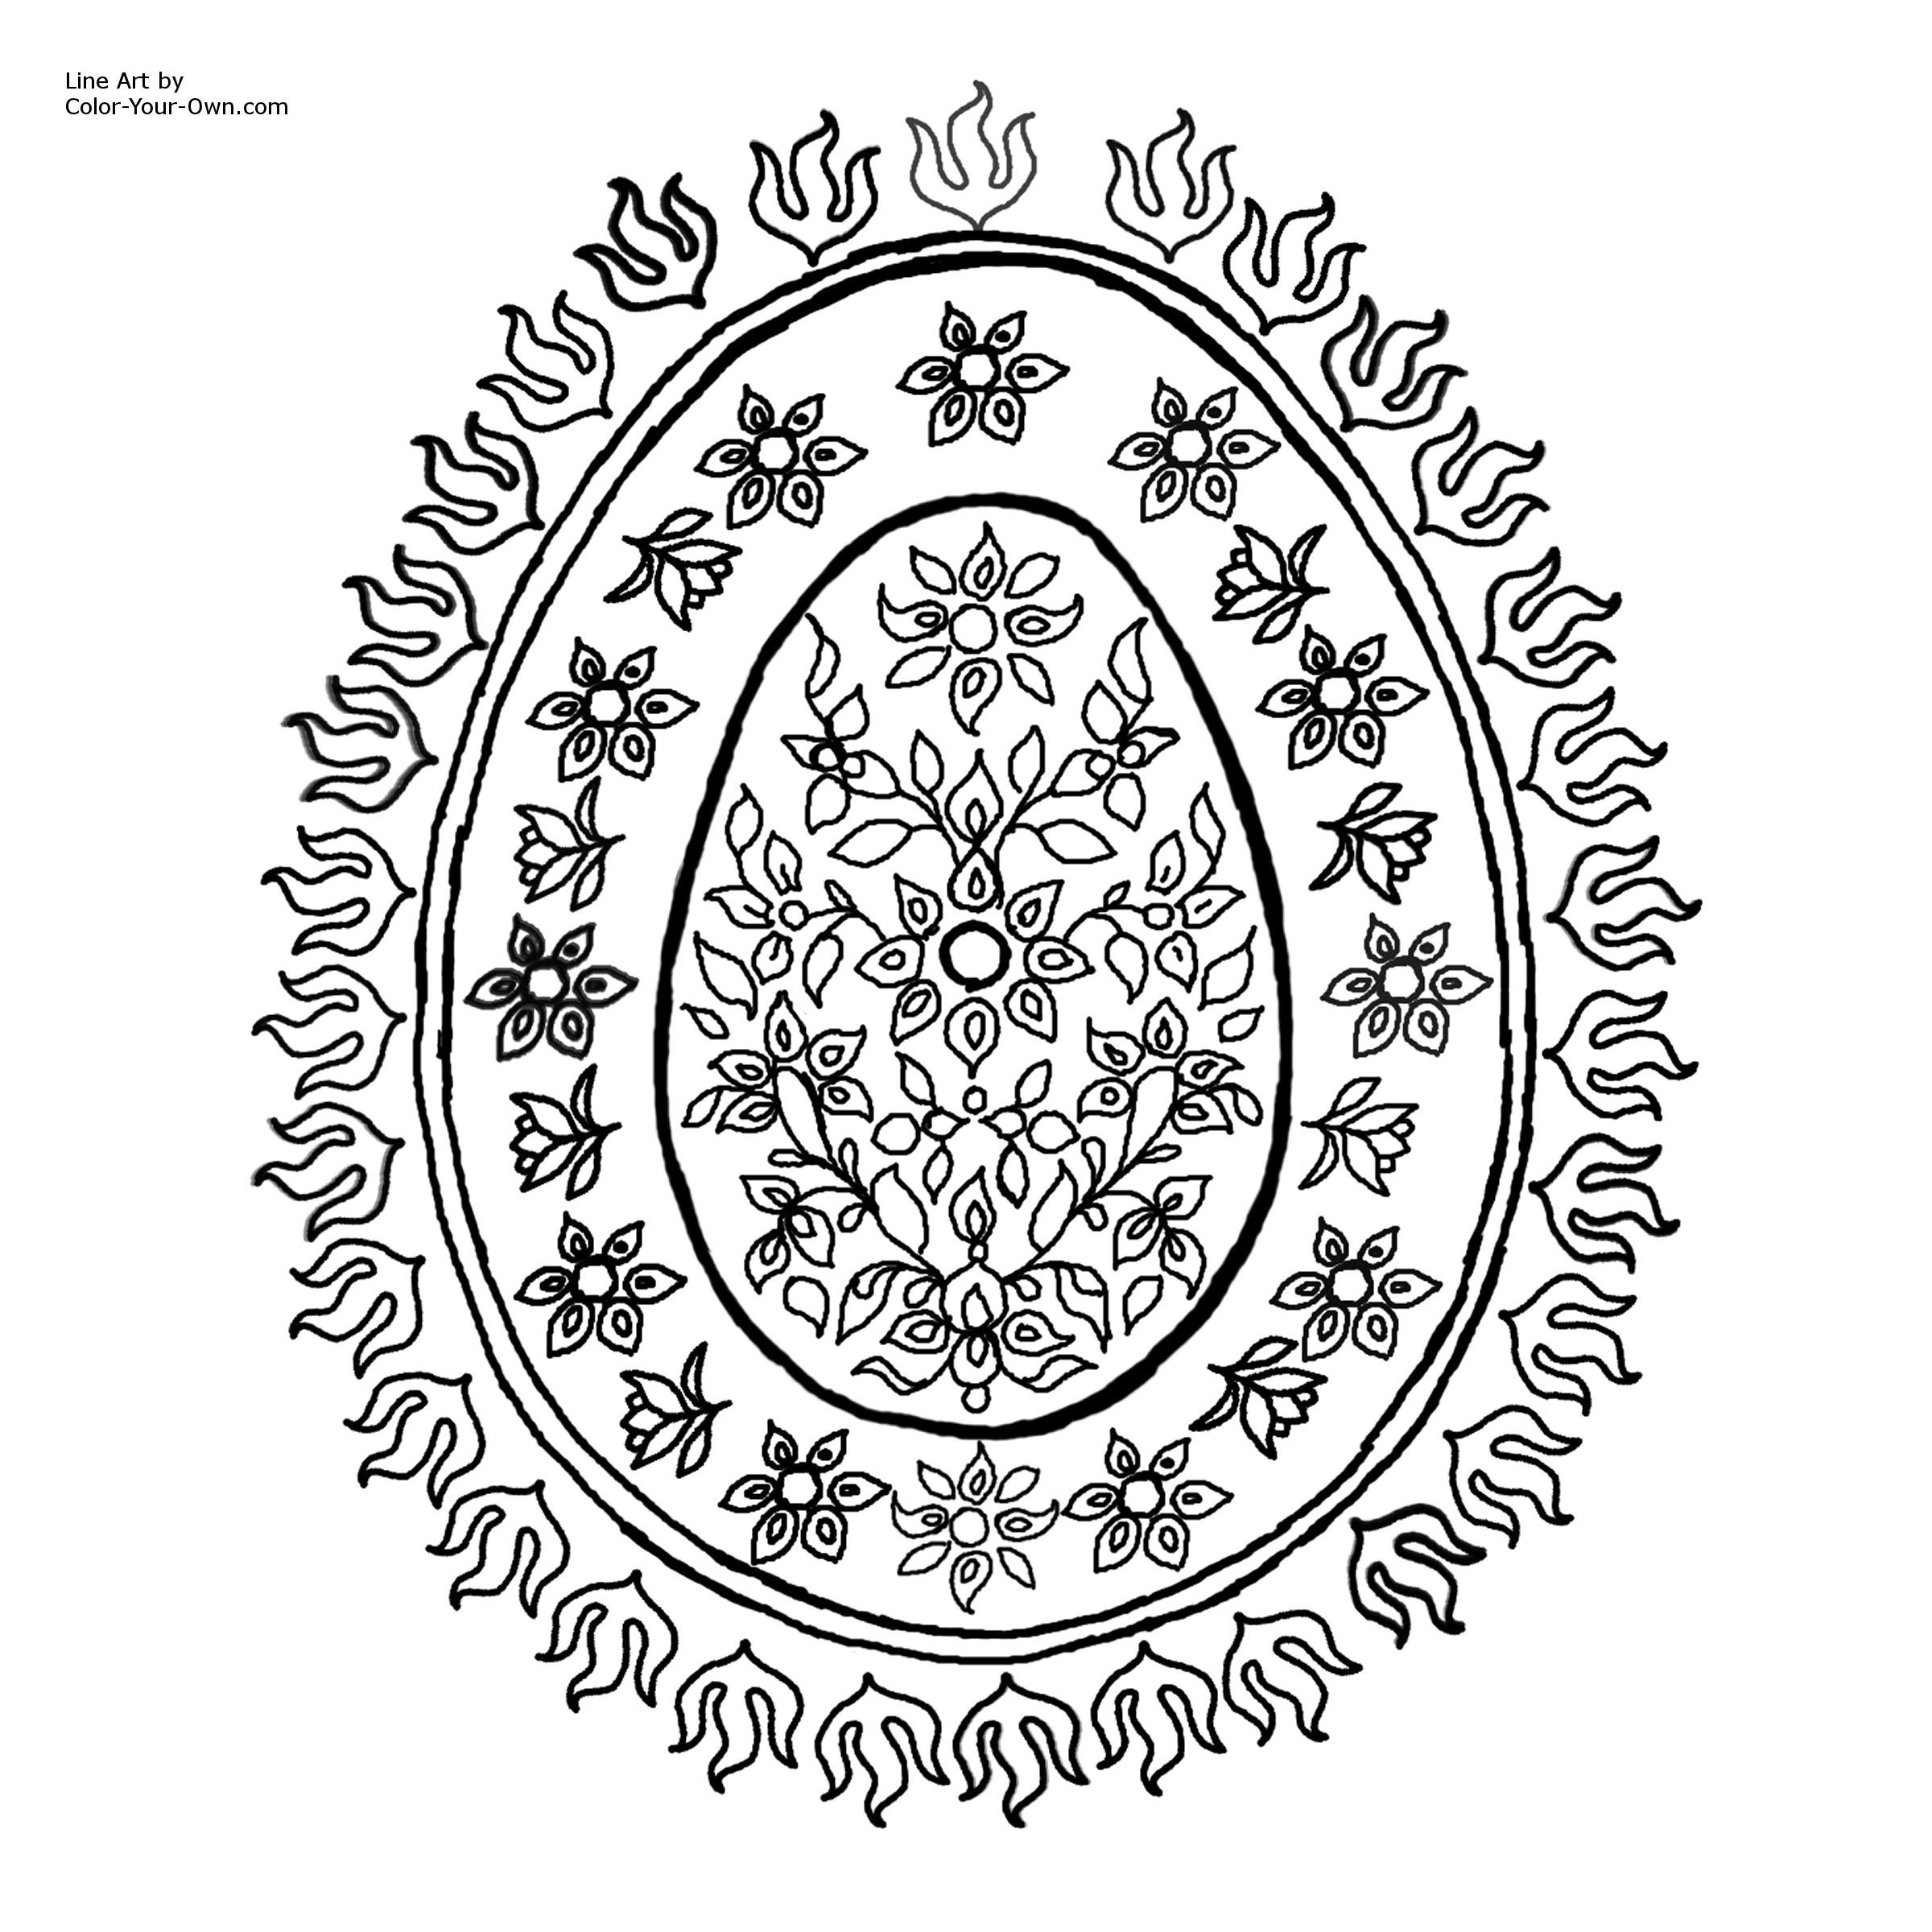 decorative egg pattern with flowers coloring page for easter